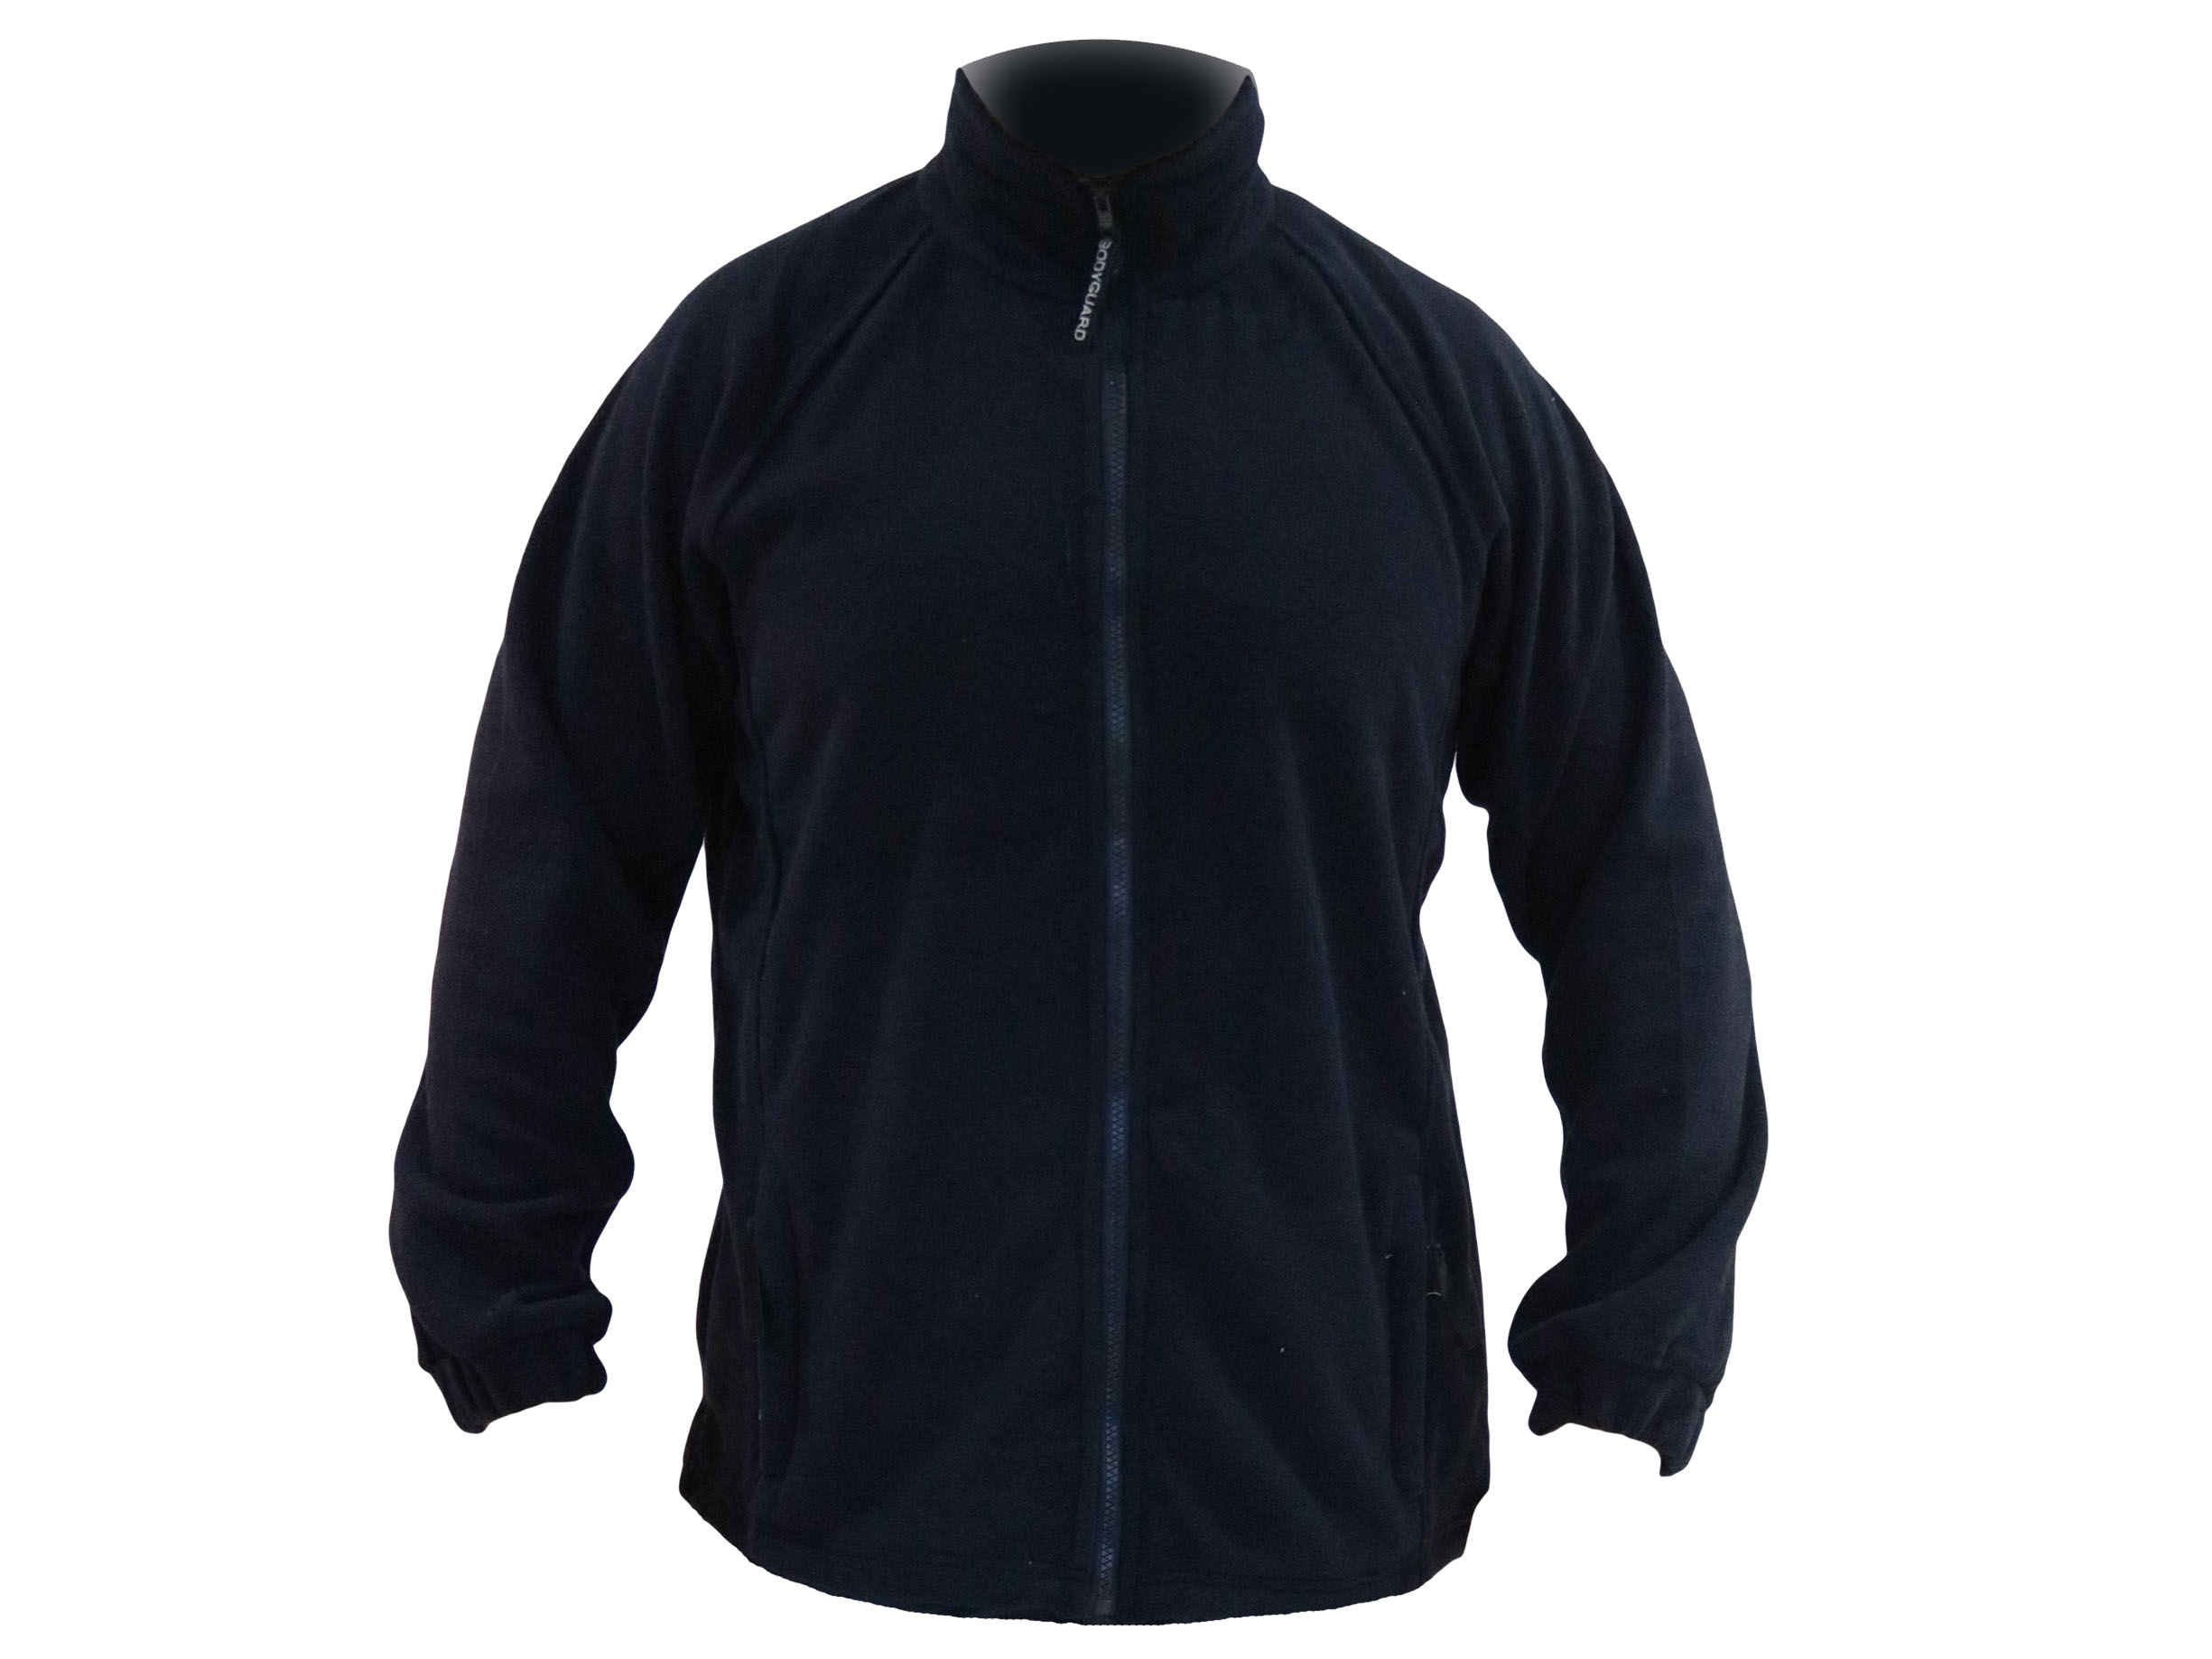 Bodyguard midweight fleece w/ full zip, Drawcord and toggles at hem -1